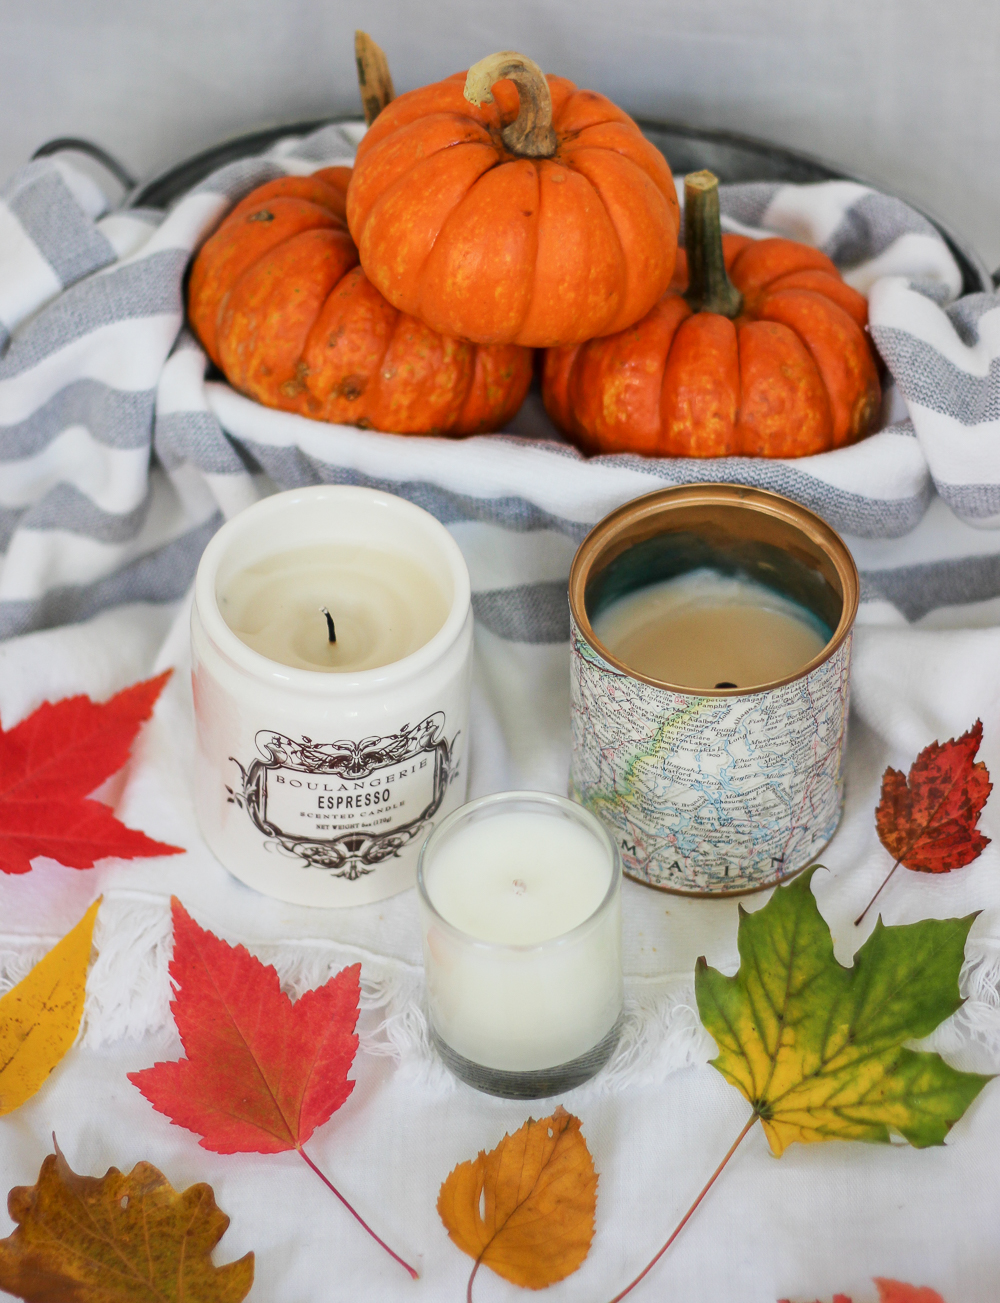 Jackie Goldhar is a Canadian fashion and lifestyle blogger and one of her favourite parts of fall are candles